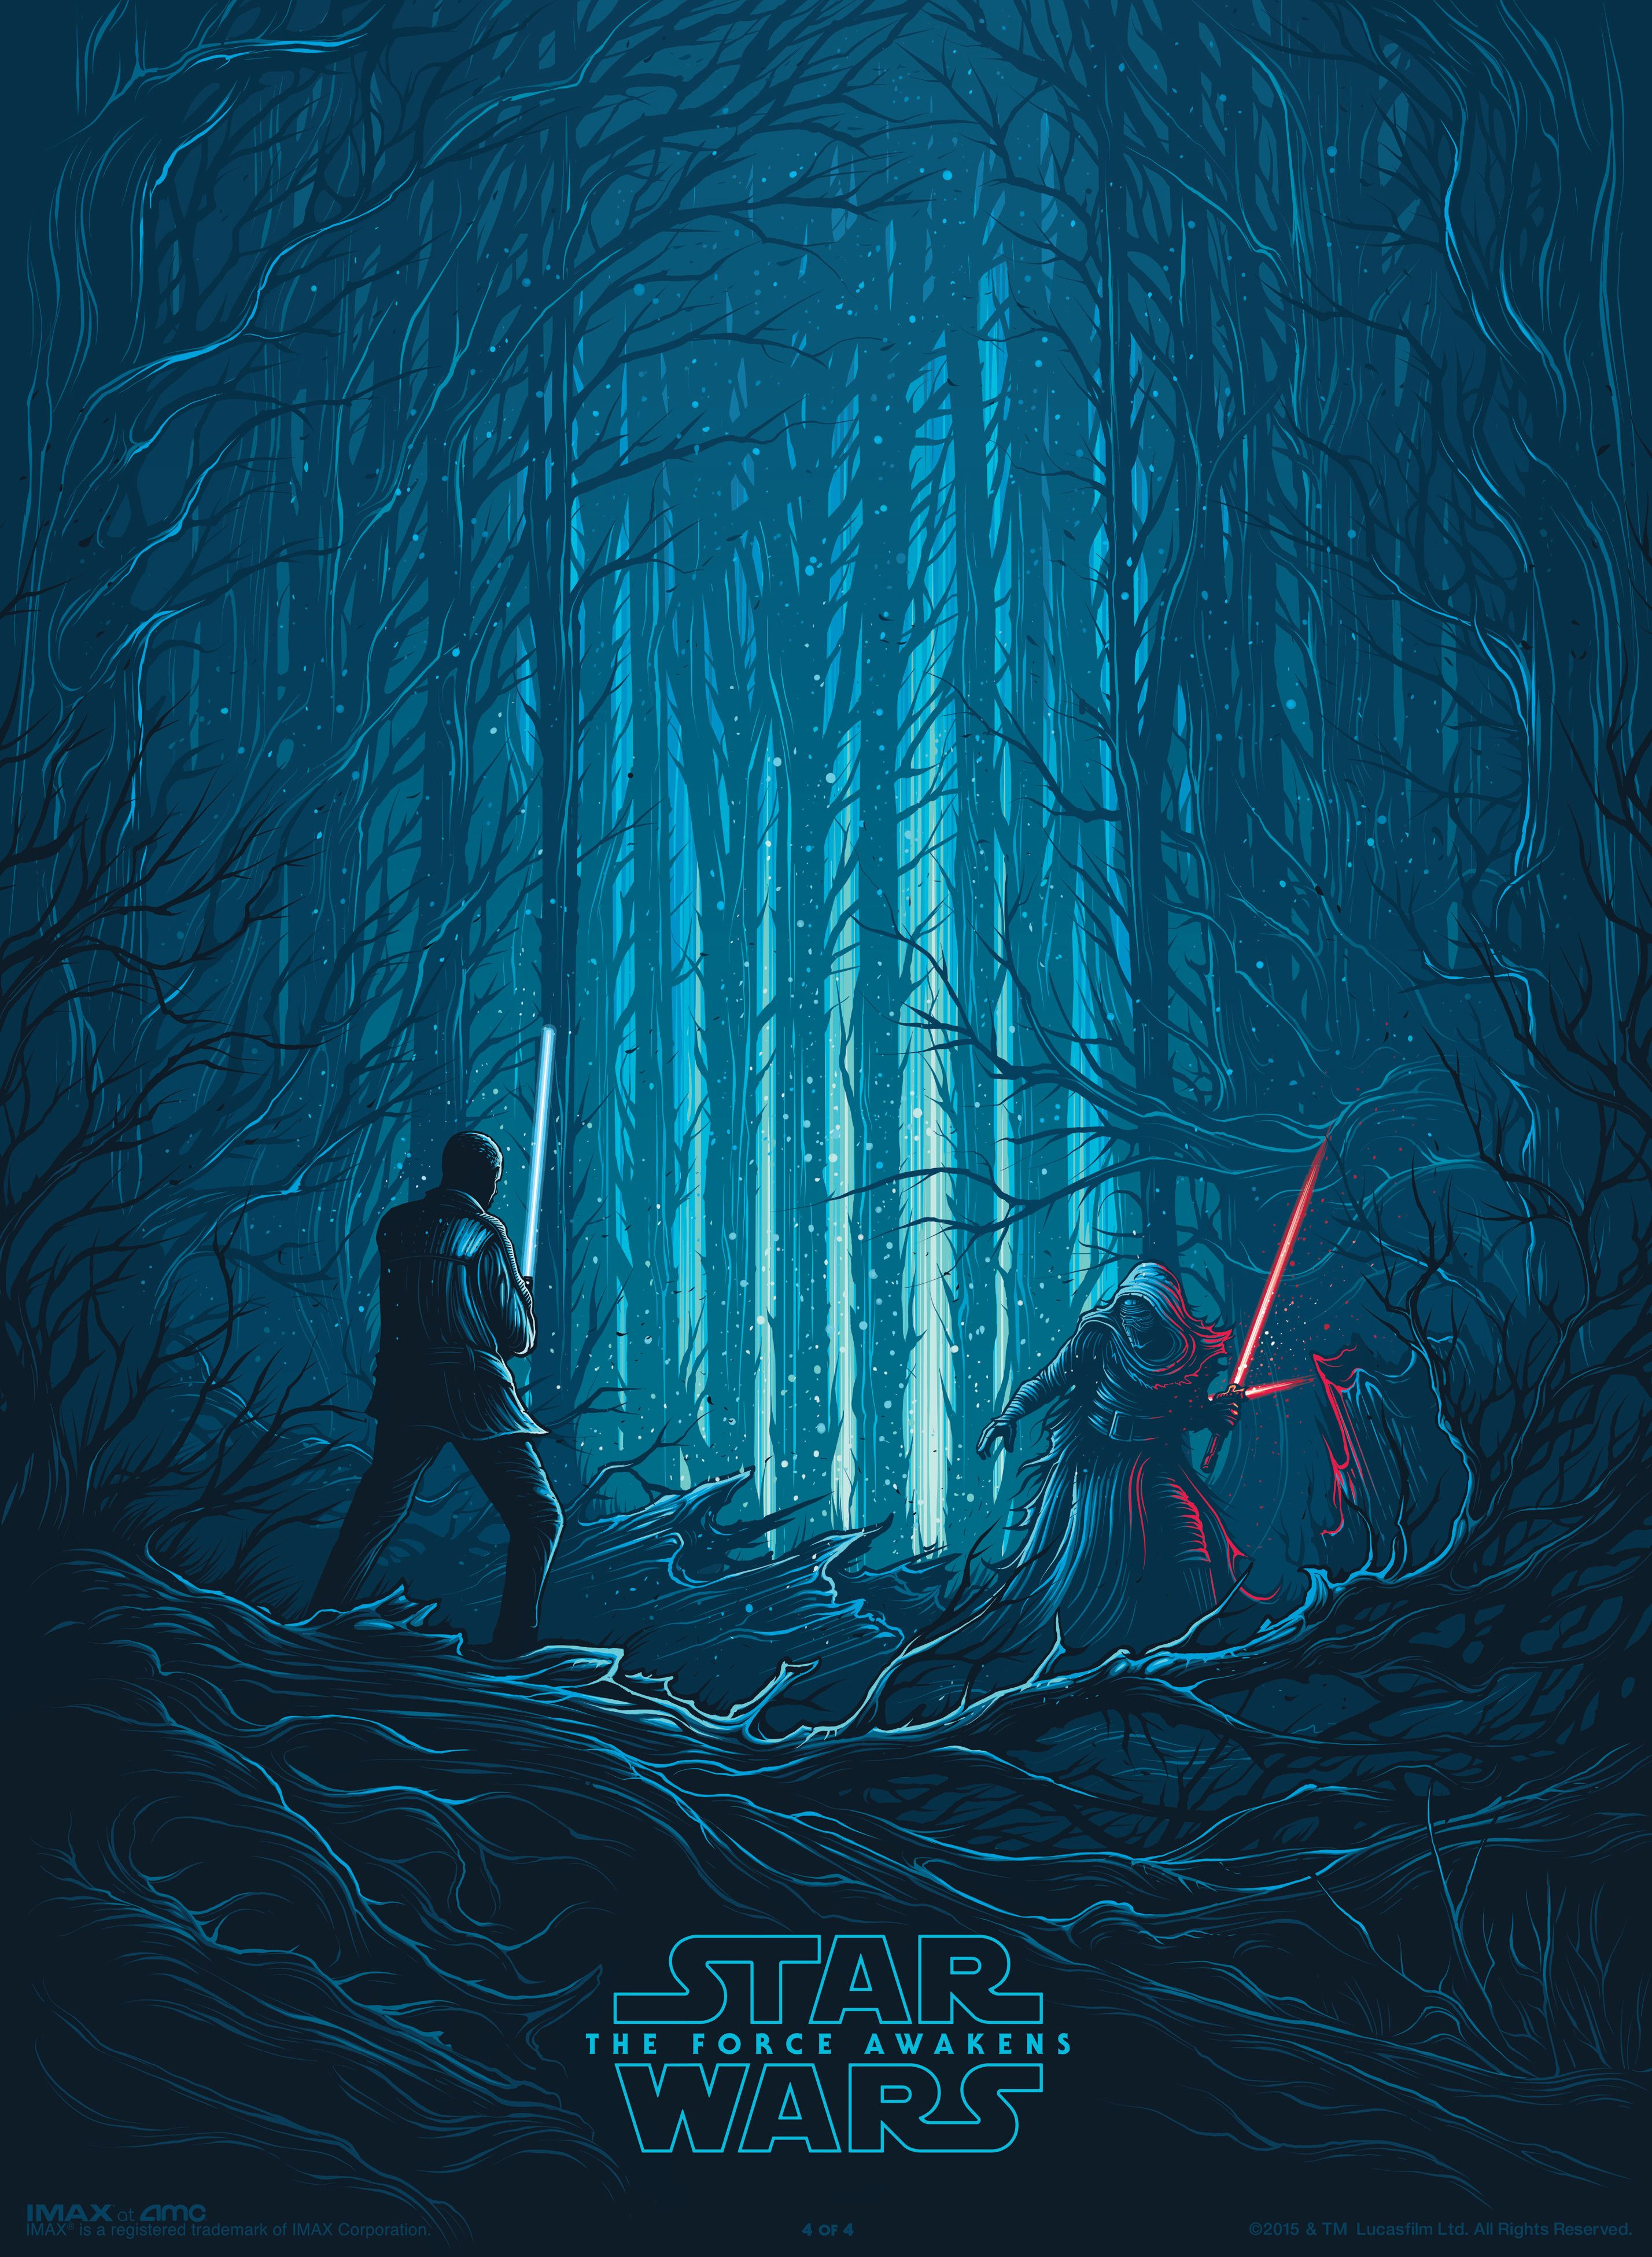 Star Wars The Force Awakens Amc Imax Theaters Poster Media